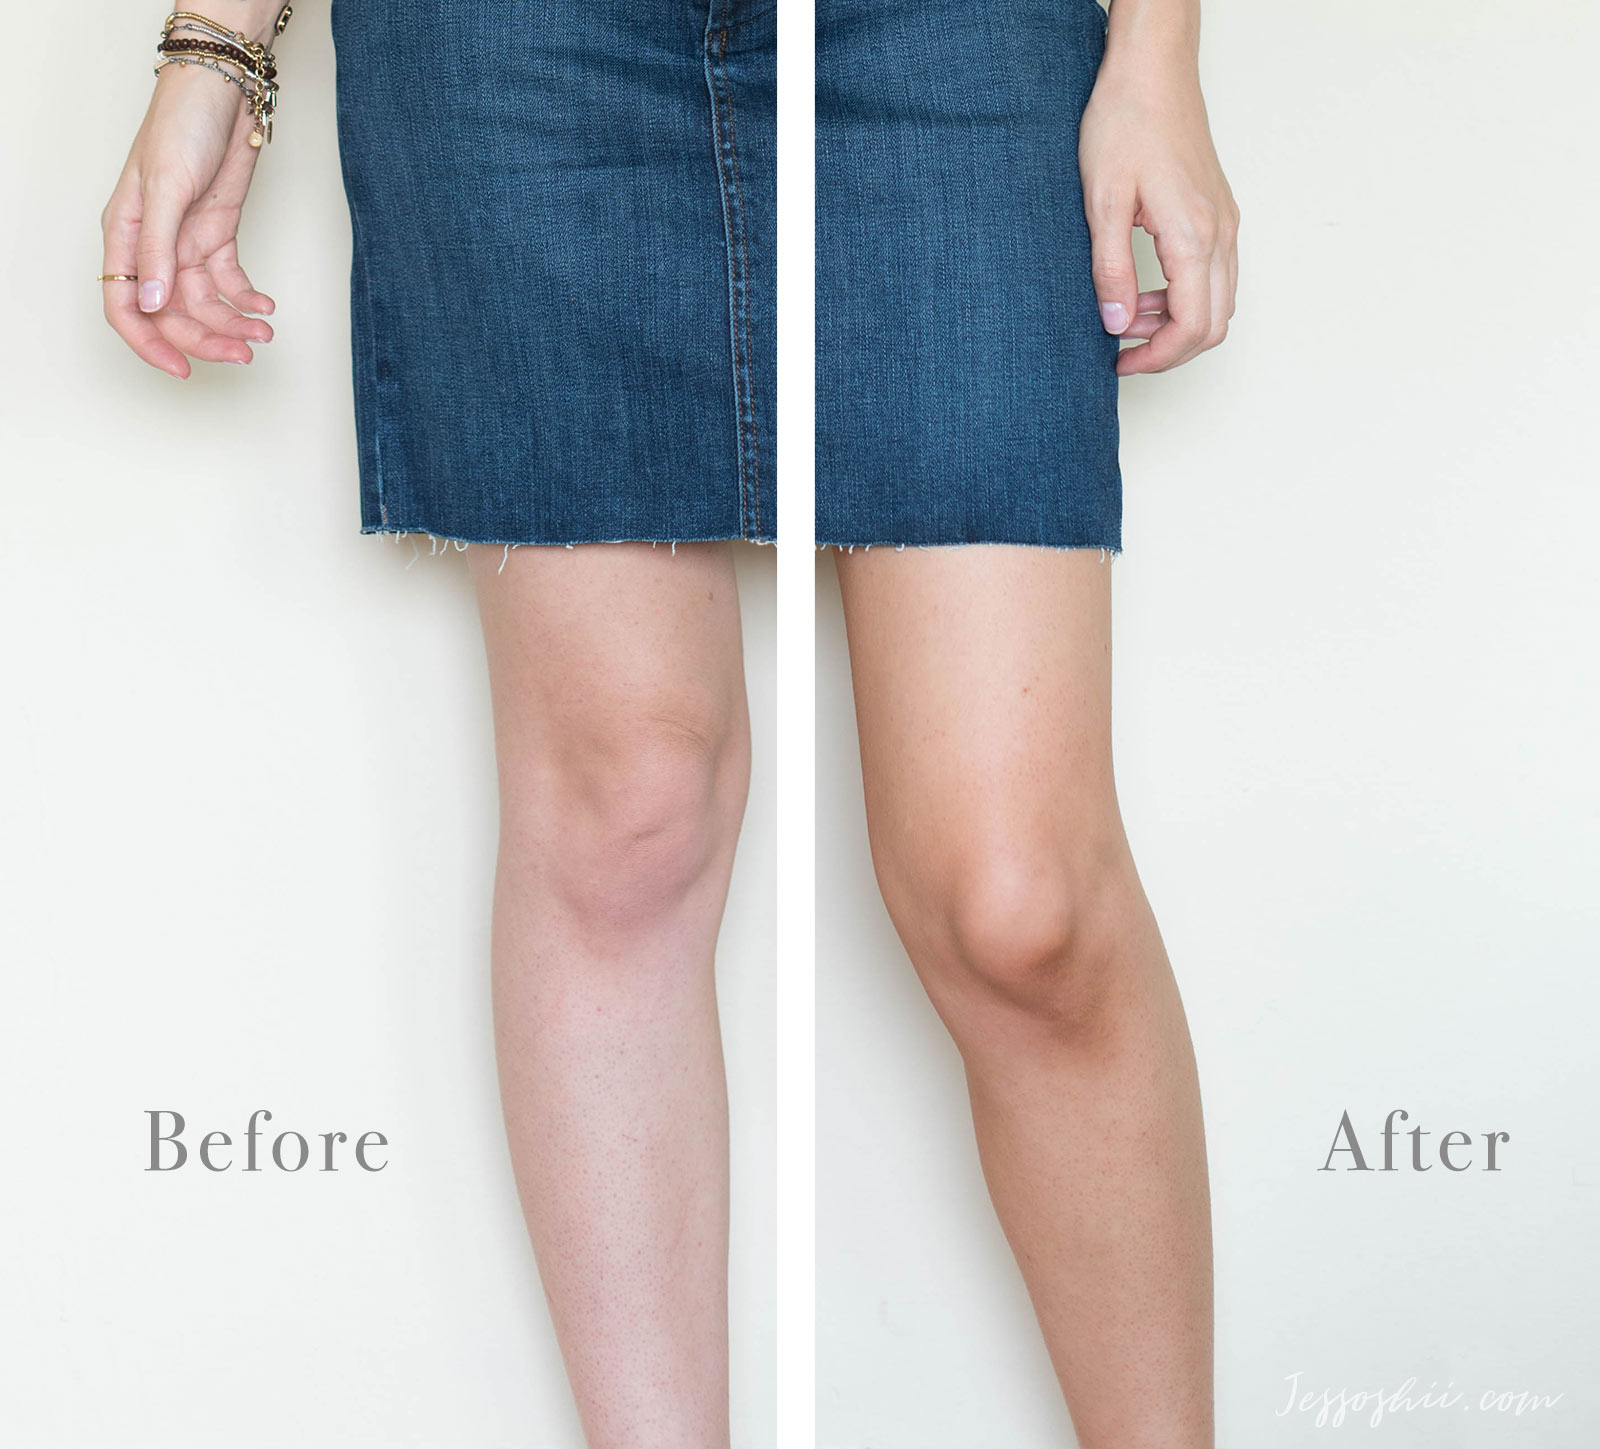 tan luxe the water review, before & after 05